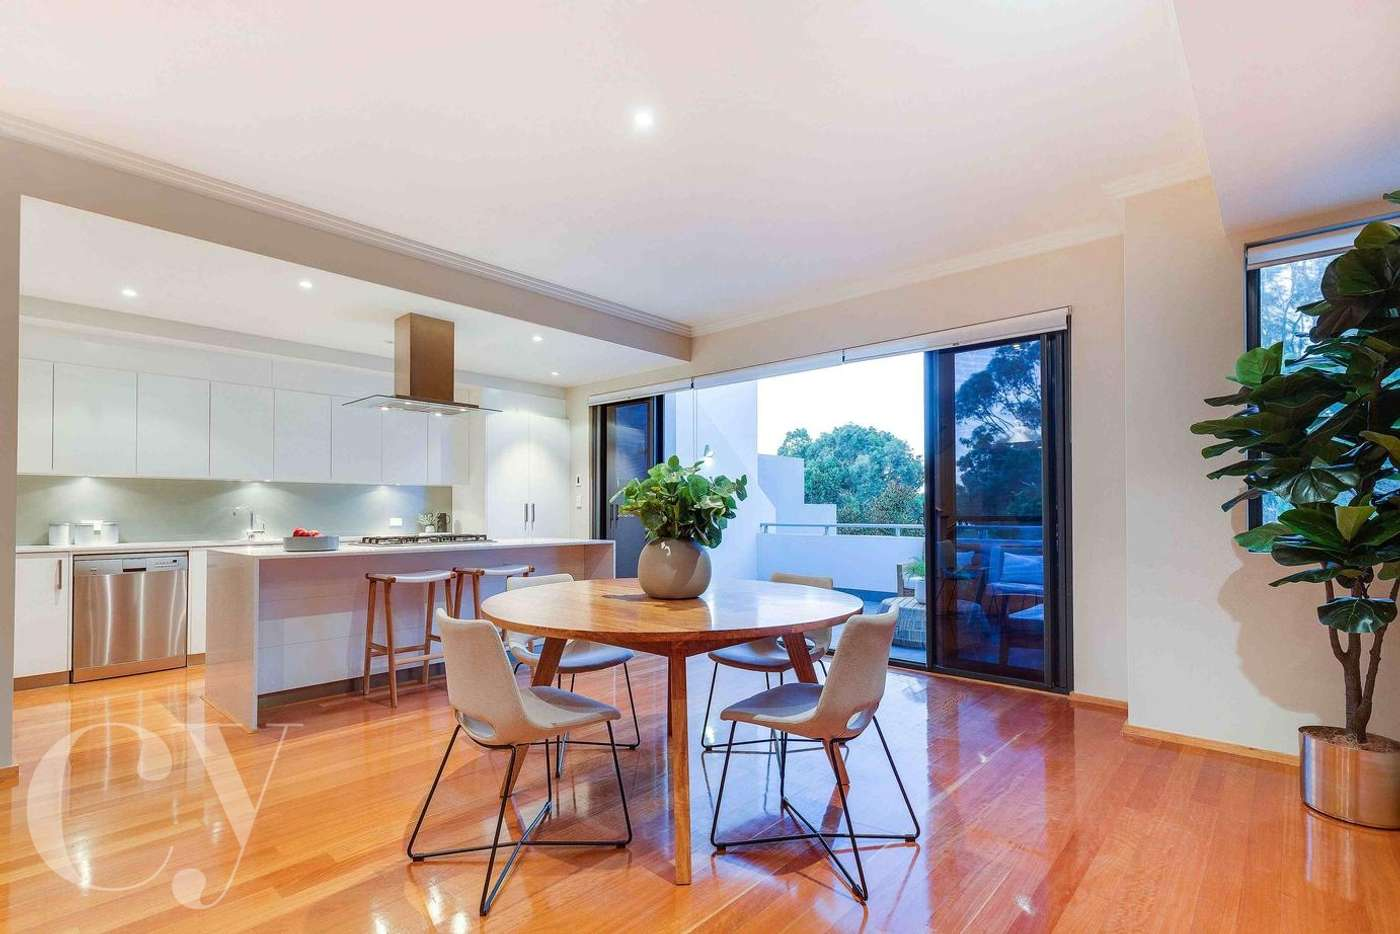 Main view of Homely house listing, 3A Lake Monger Drive, West Leederville WA 6007